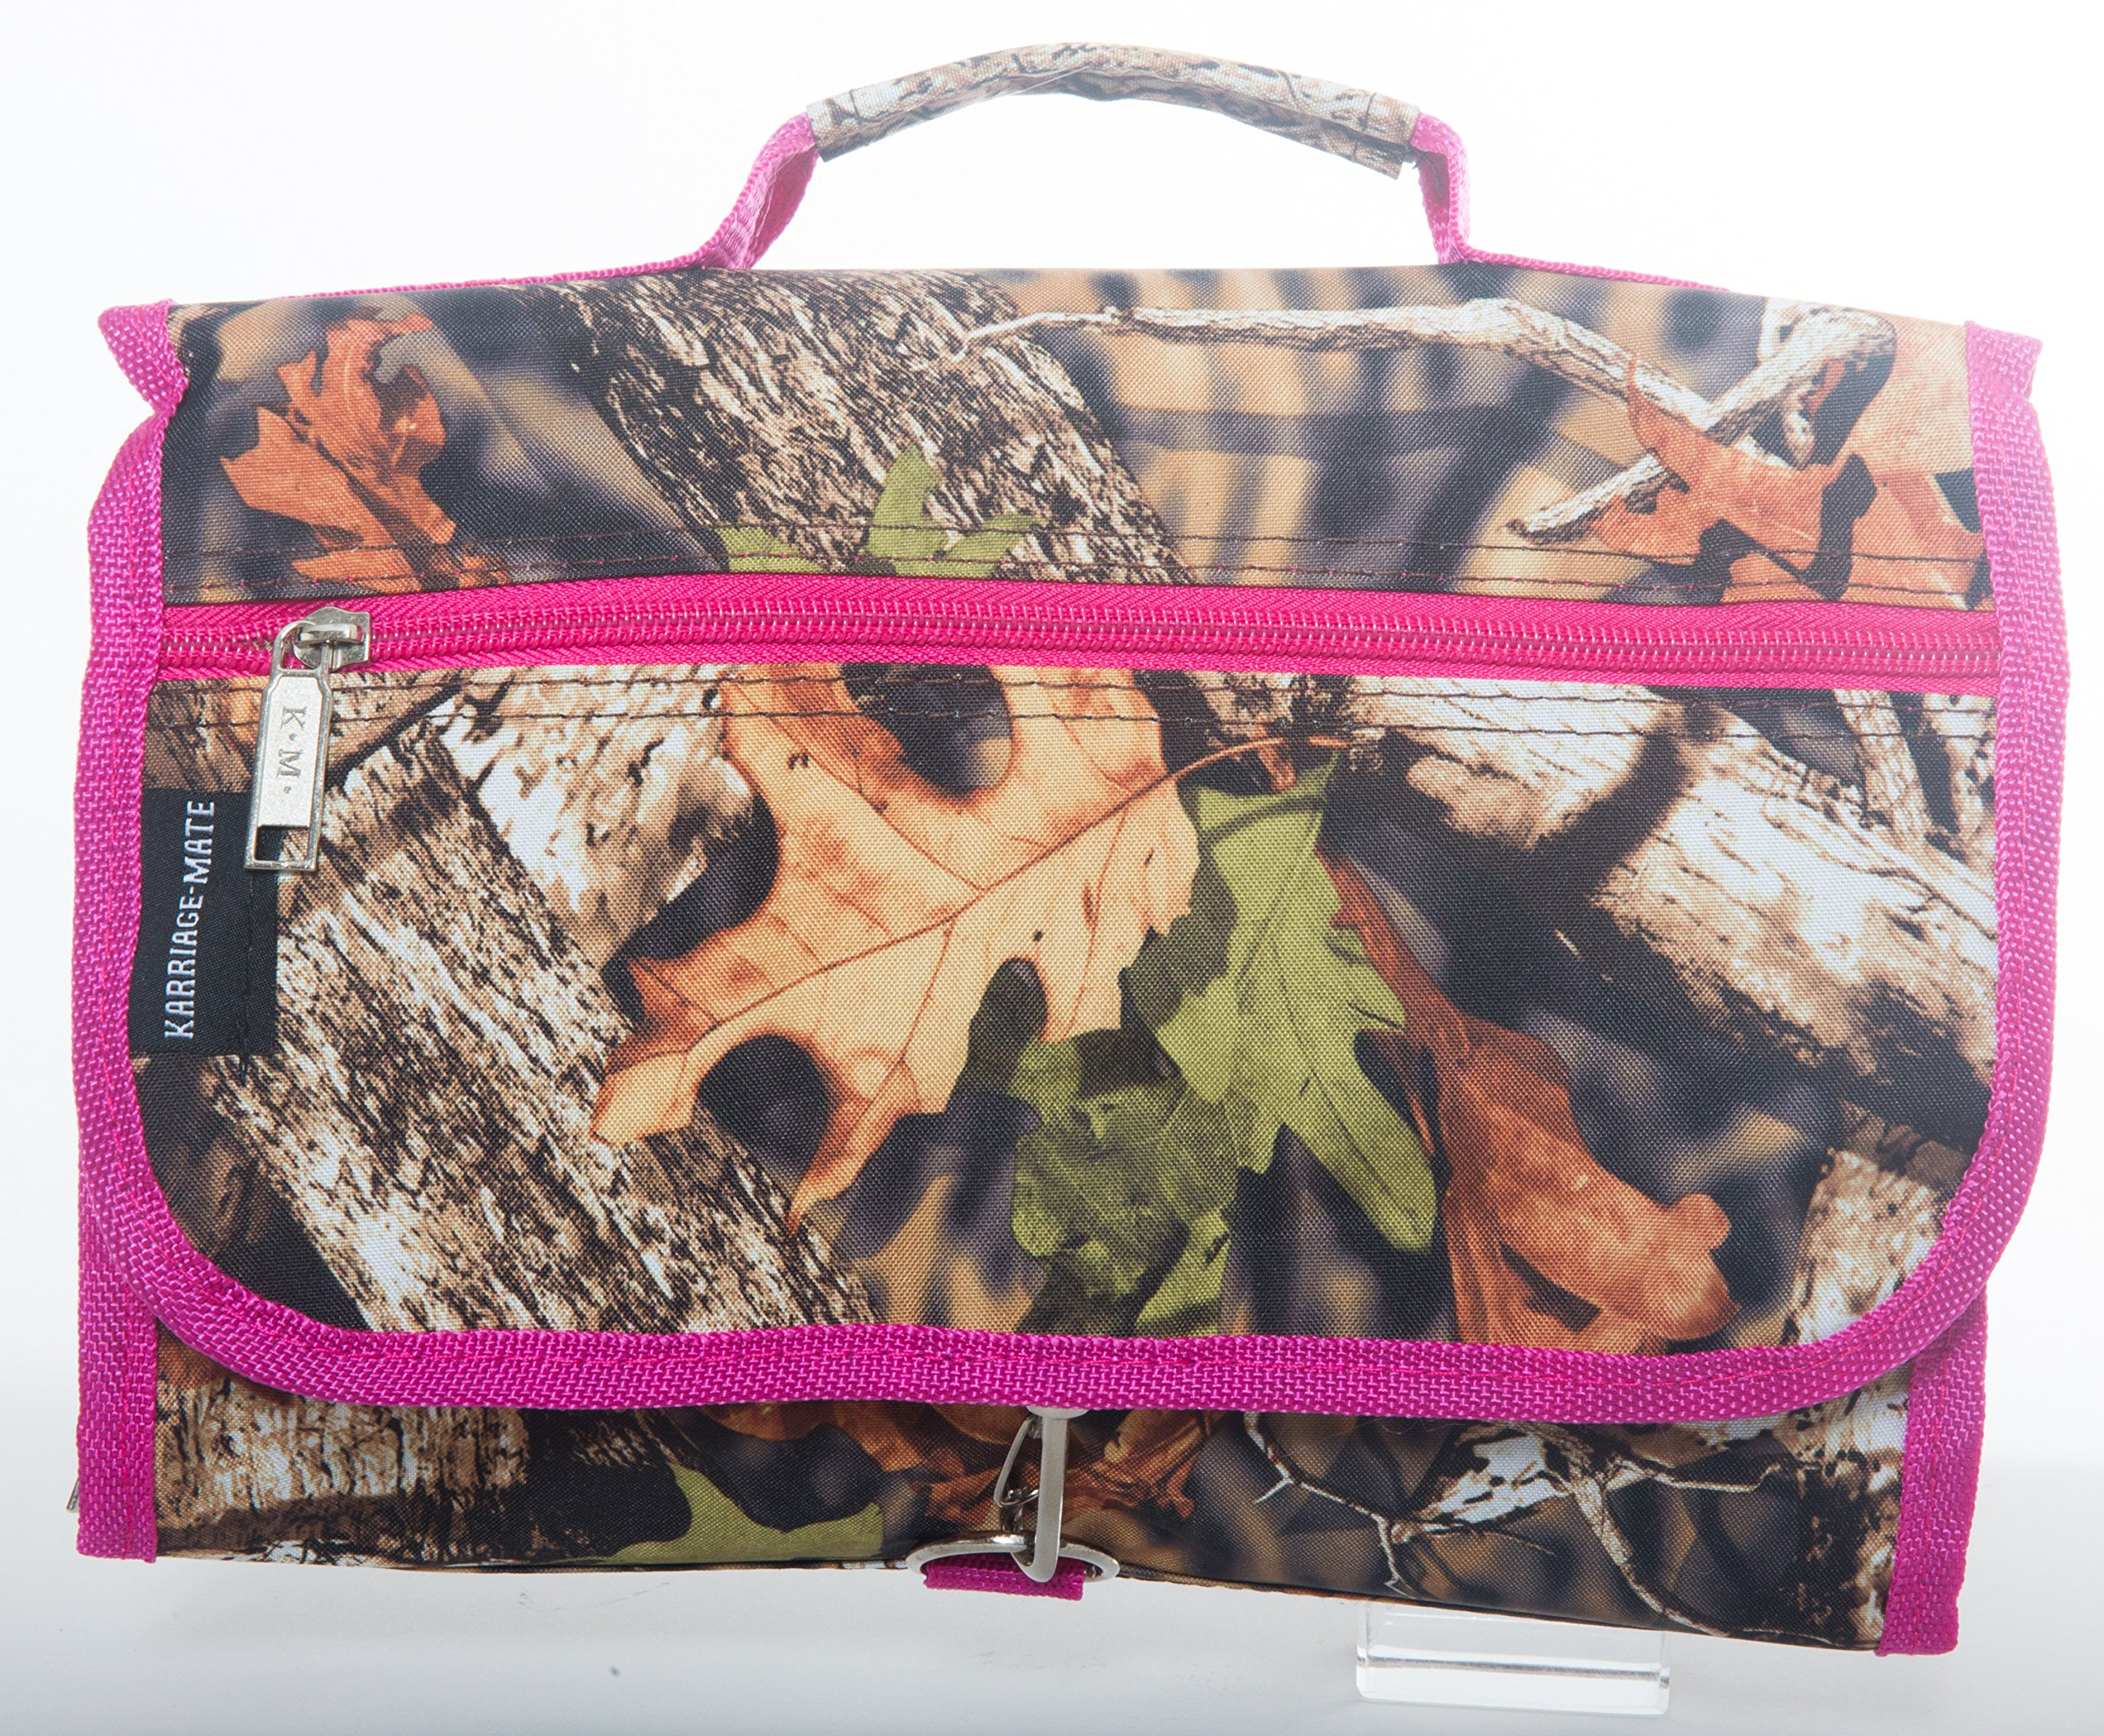 Artisan Owl Hanging Toiletry Bag-Travel Organizer Cosmetic Make up Bag case for Women Men Kit with Hanging Hook for Vacation, Travel (Camo)